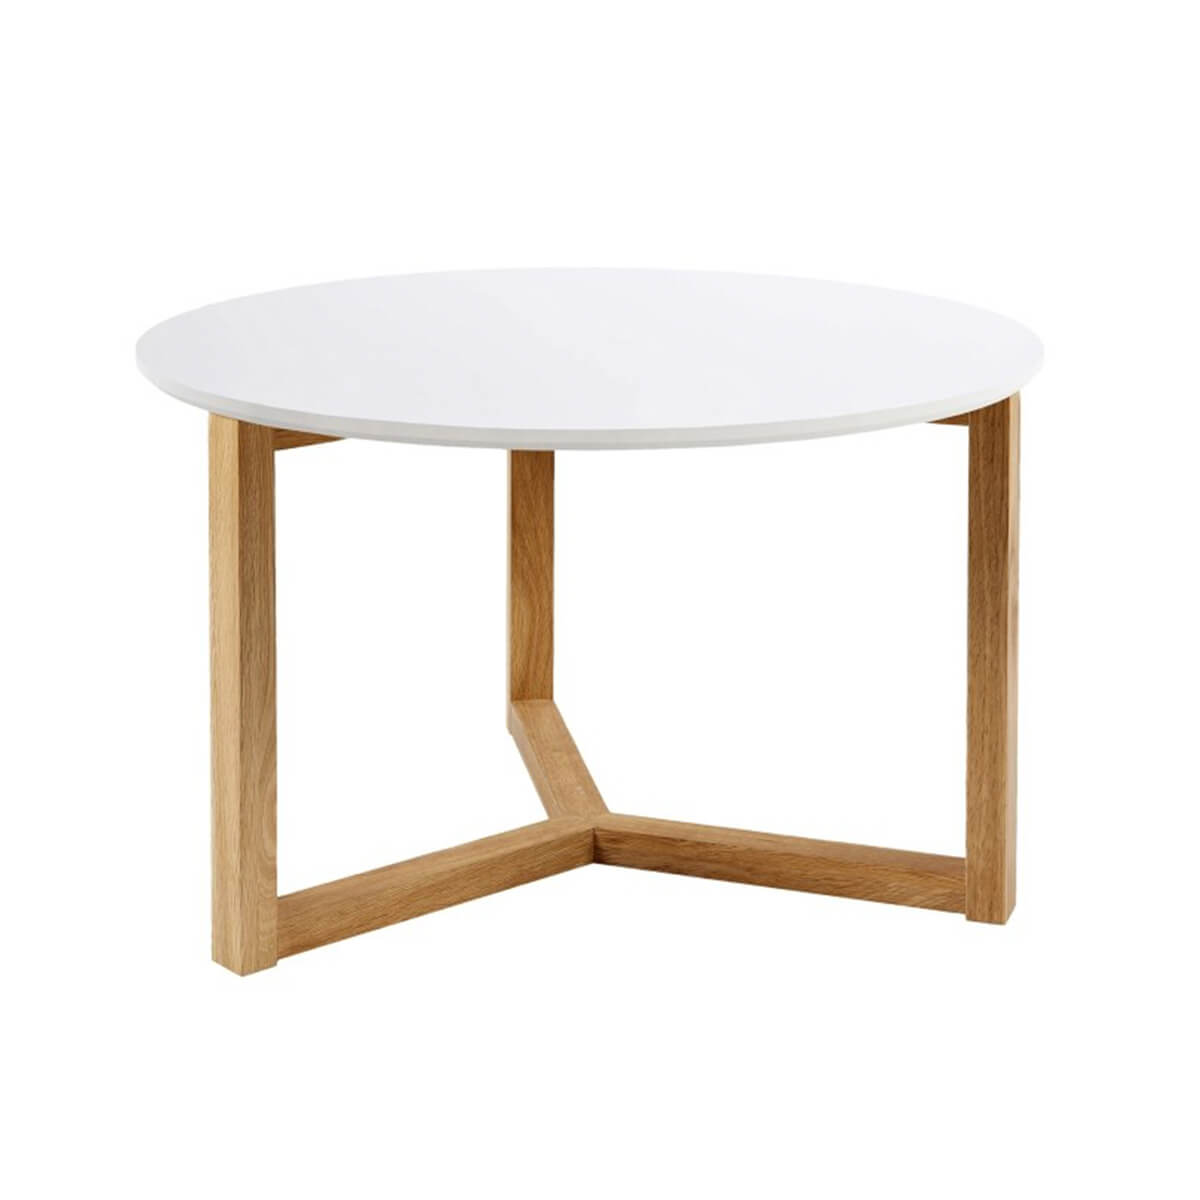 Scarlett White & Solid Oak Coffee Table